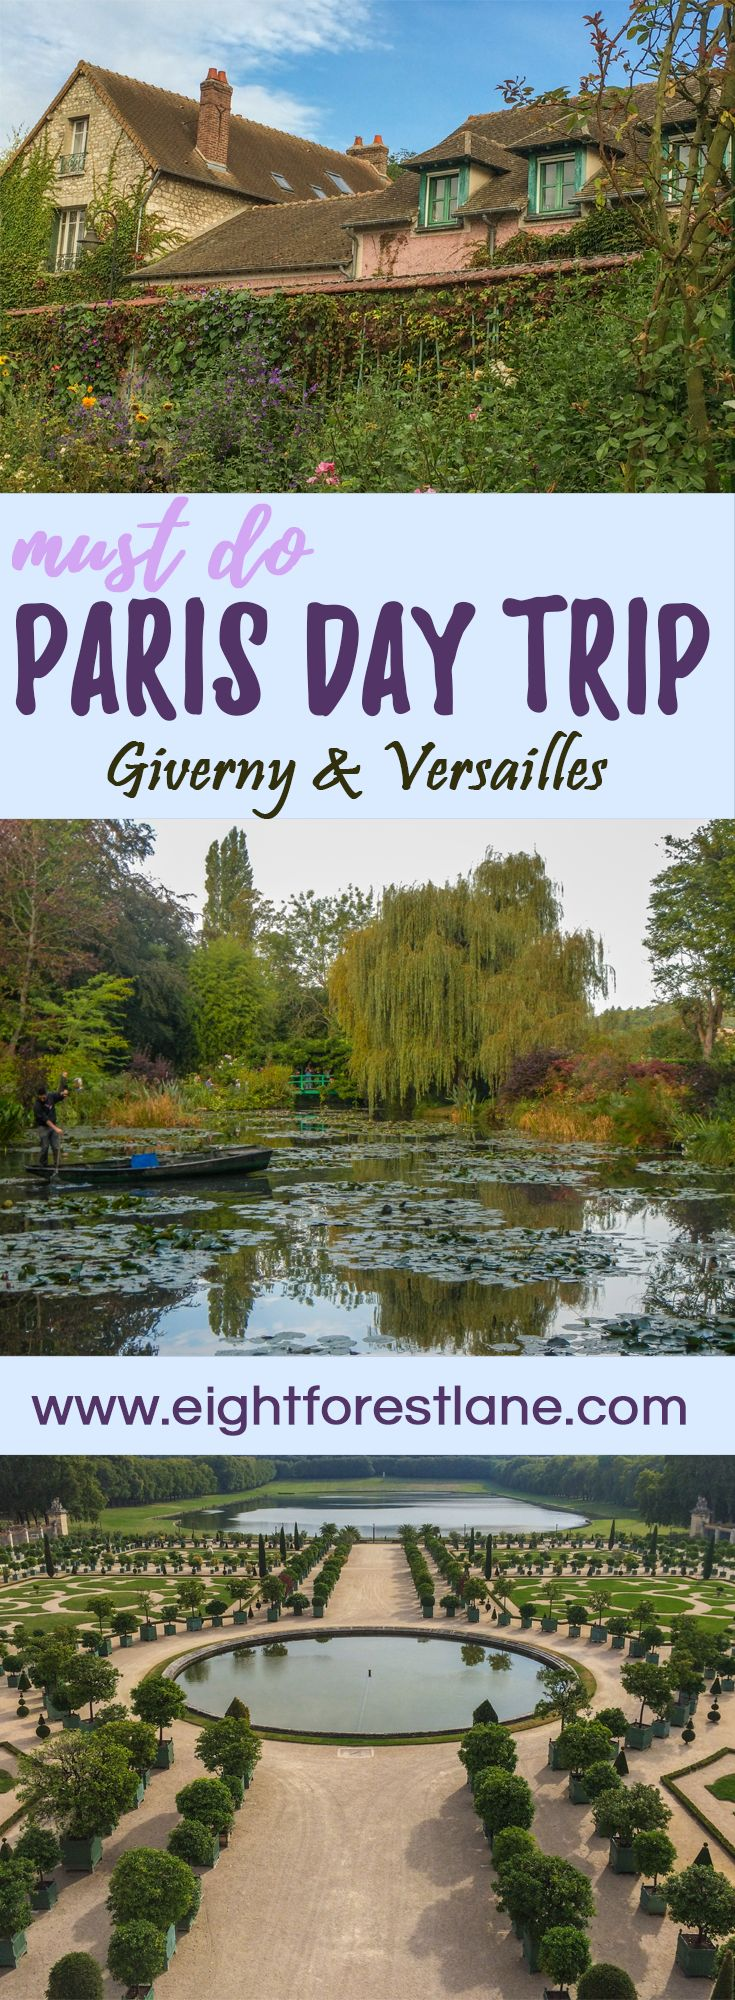 A Day Trip From Paris: Giverny & Versailles